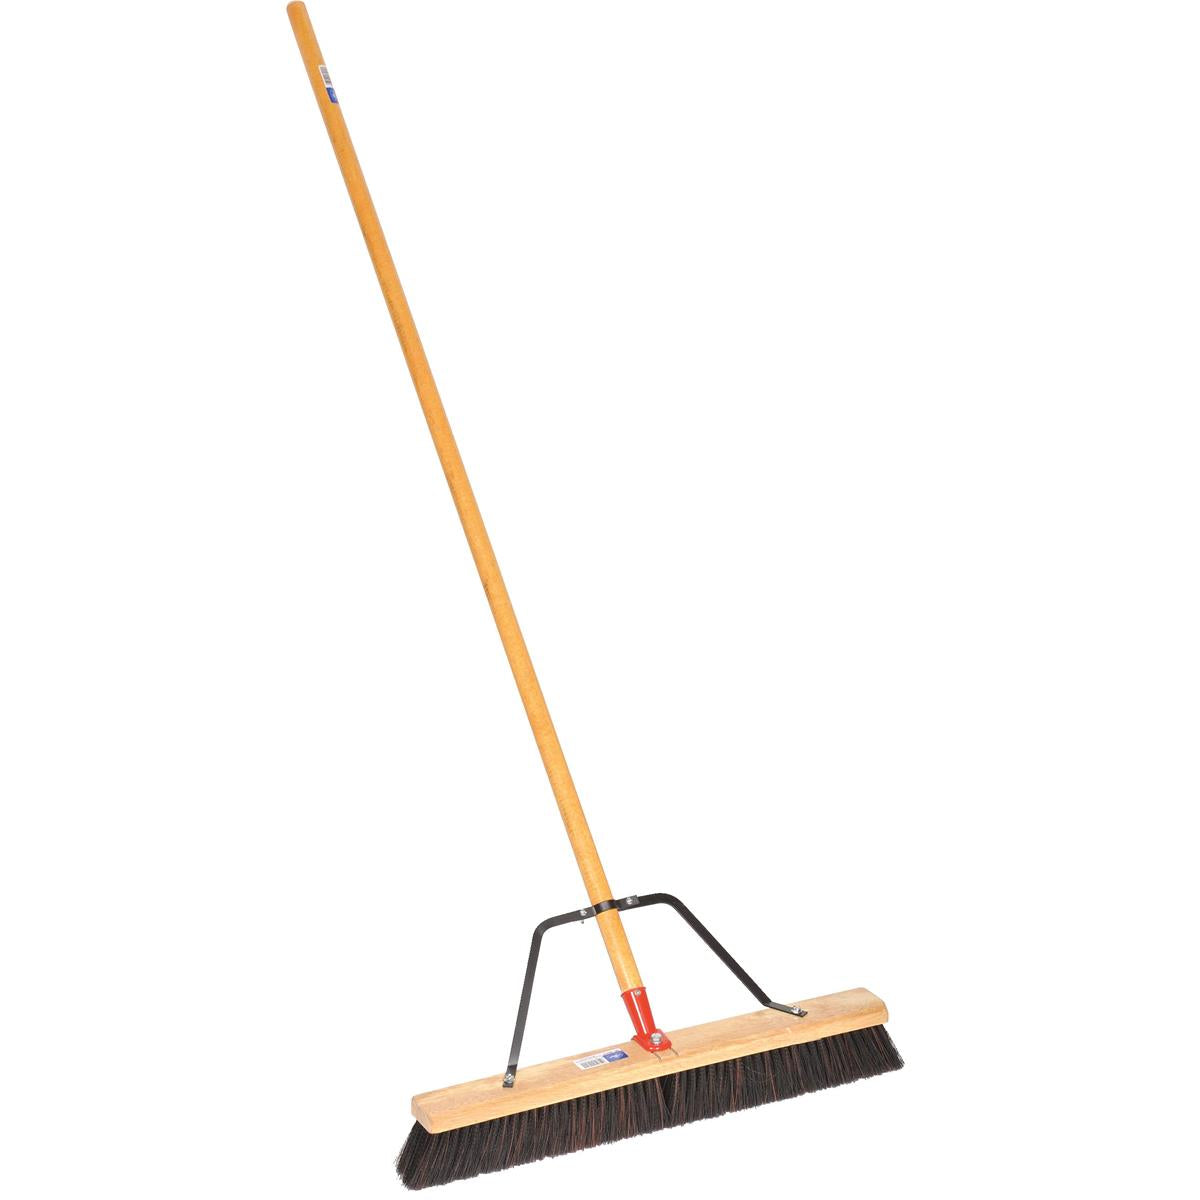 Magnolia #56 Fine to Medium Sweeping Broom